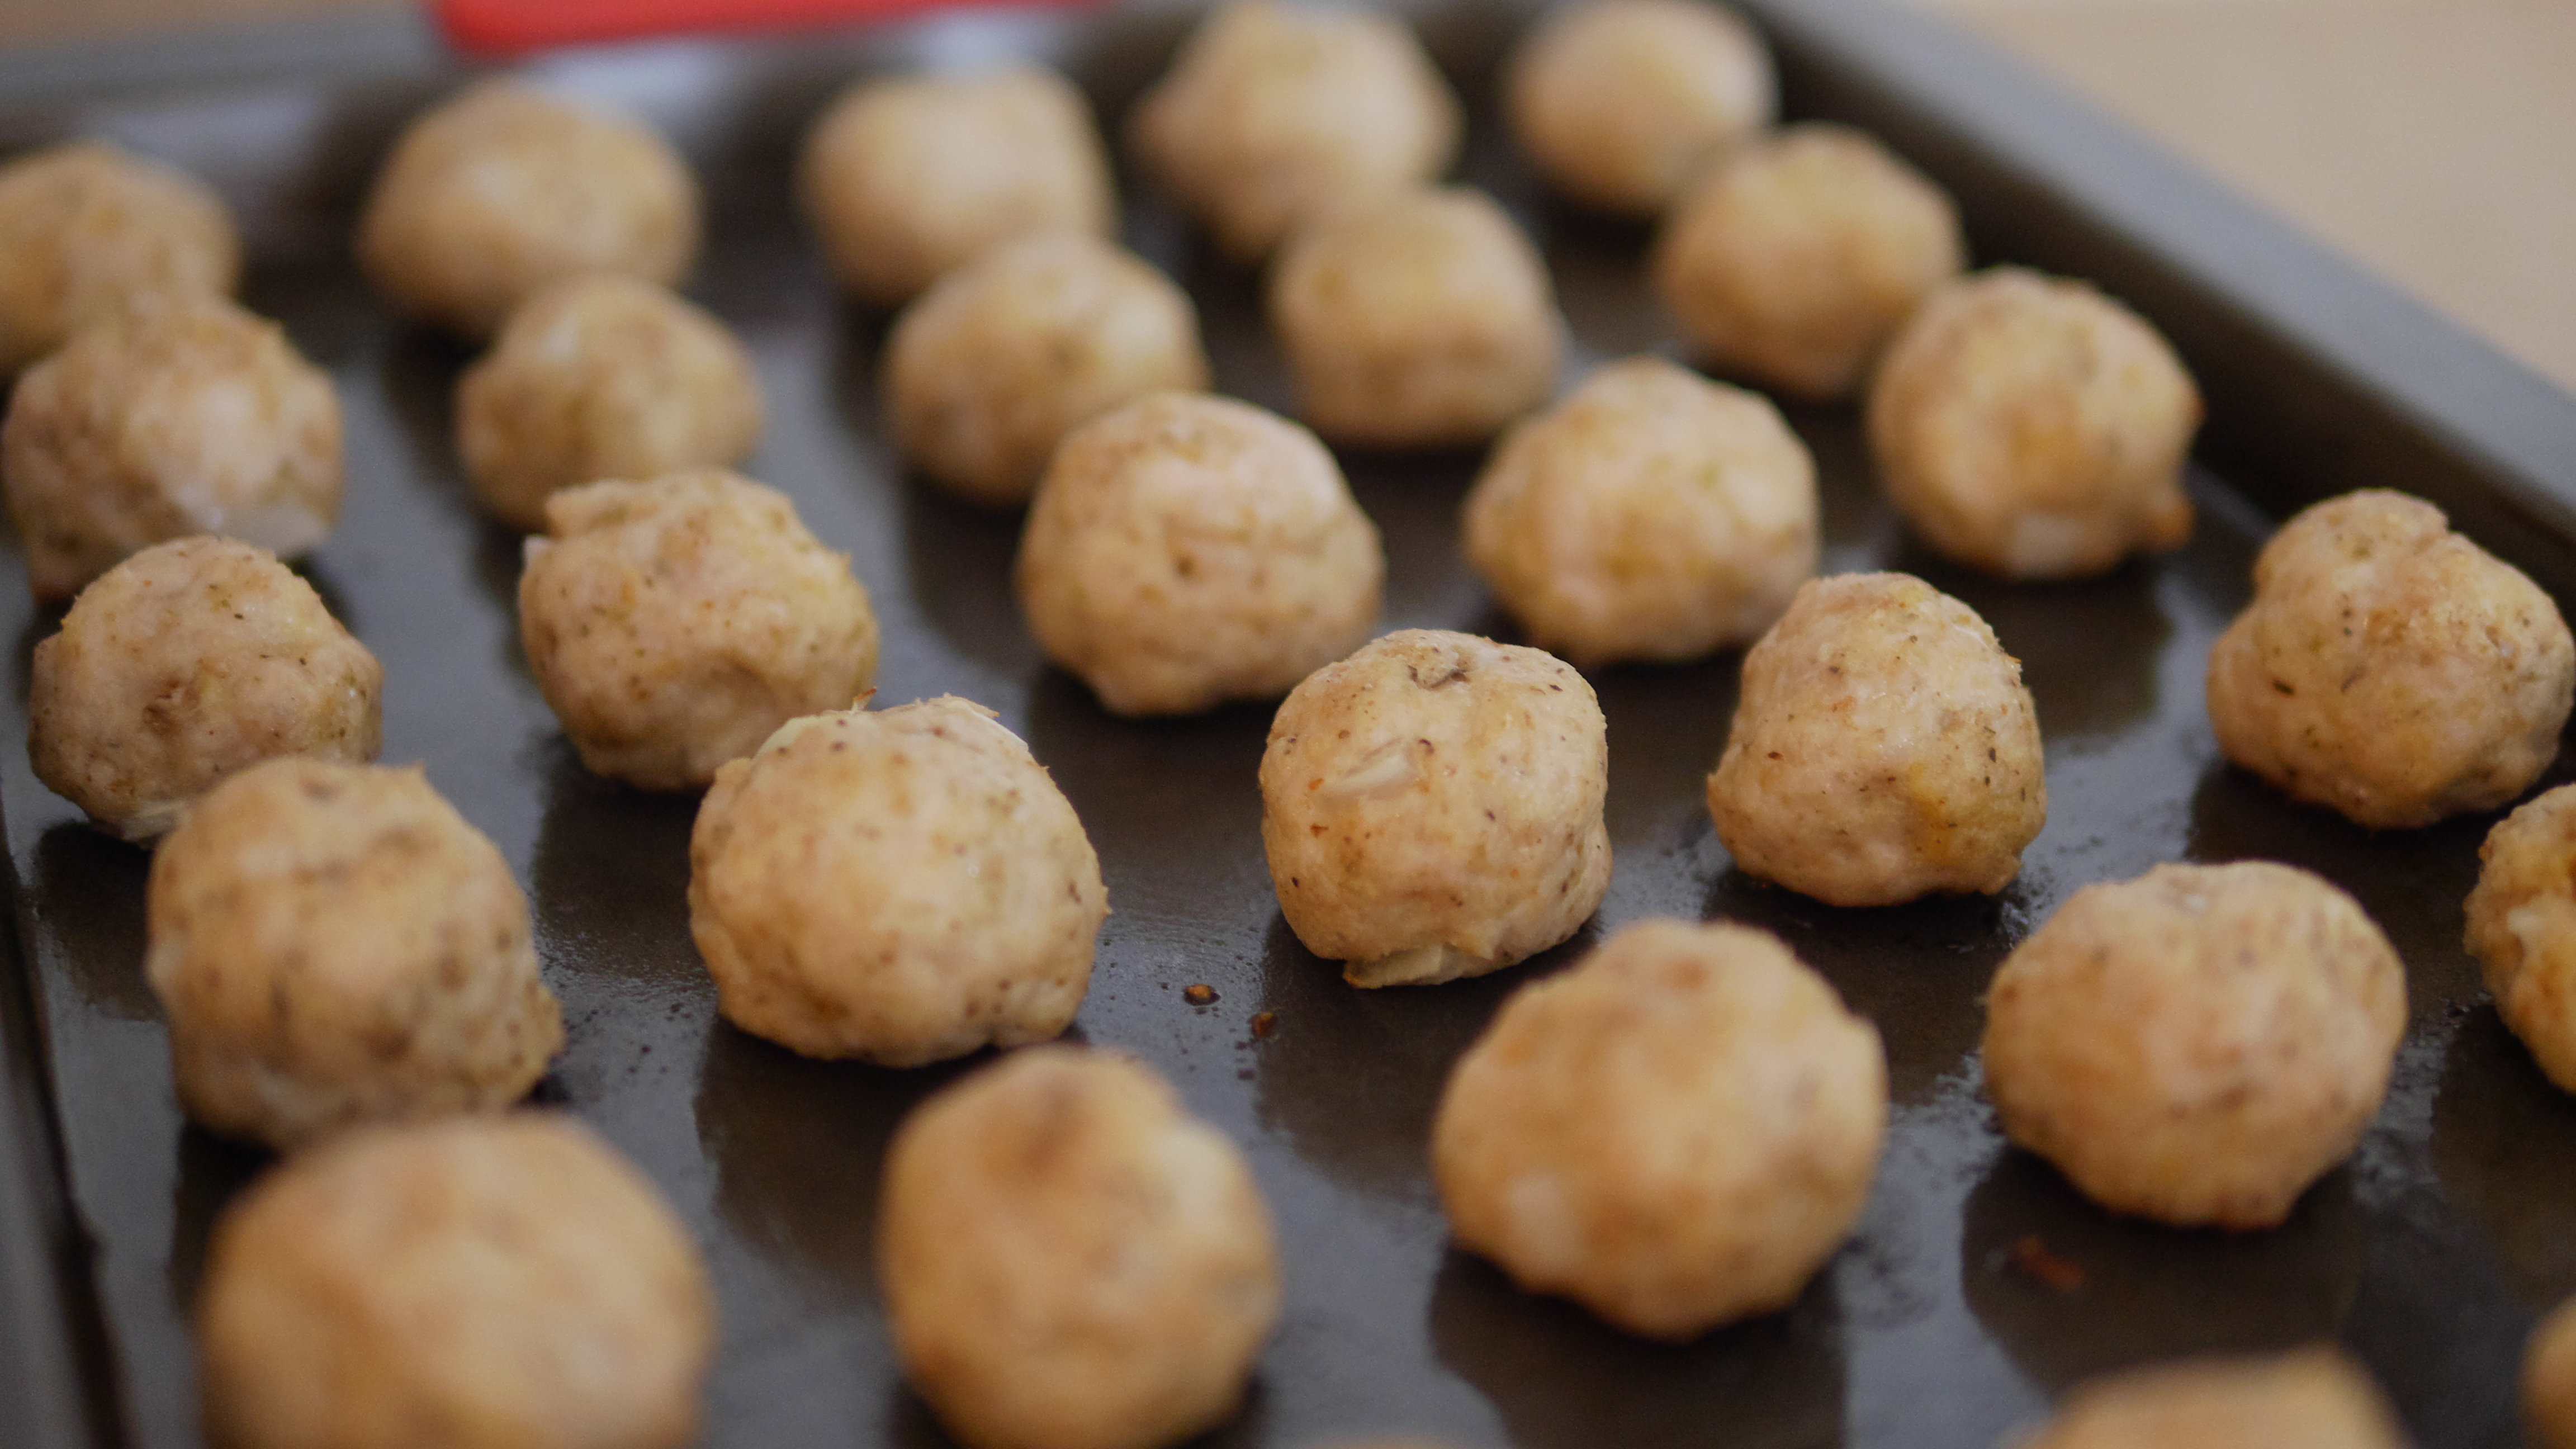 Theresa's Reviews - When you're making meatballs for turkey meatball vegetable soup, make small meatballs so they will fit on your spoon. #turkey #meatballs #turkeymeatballs #soups #healthysoup #turkeysoup #souprecipe